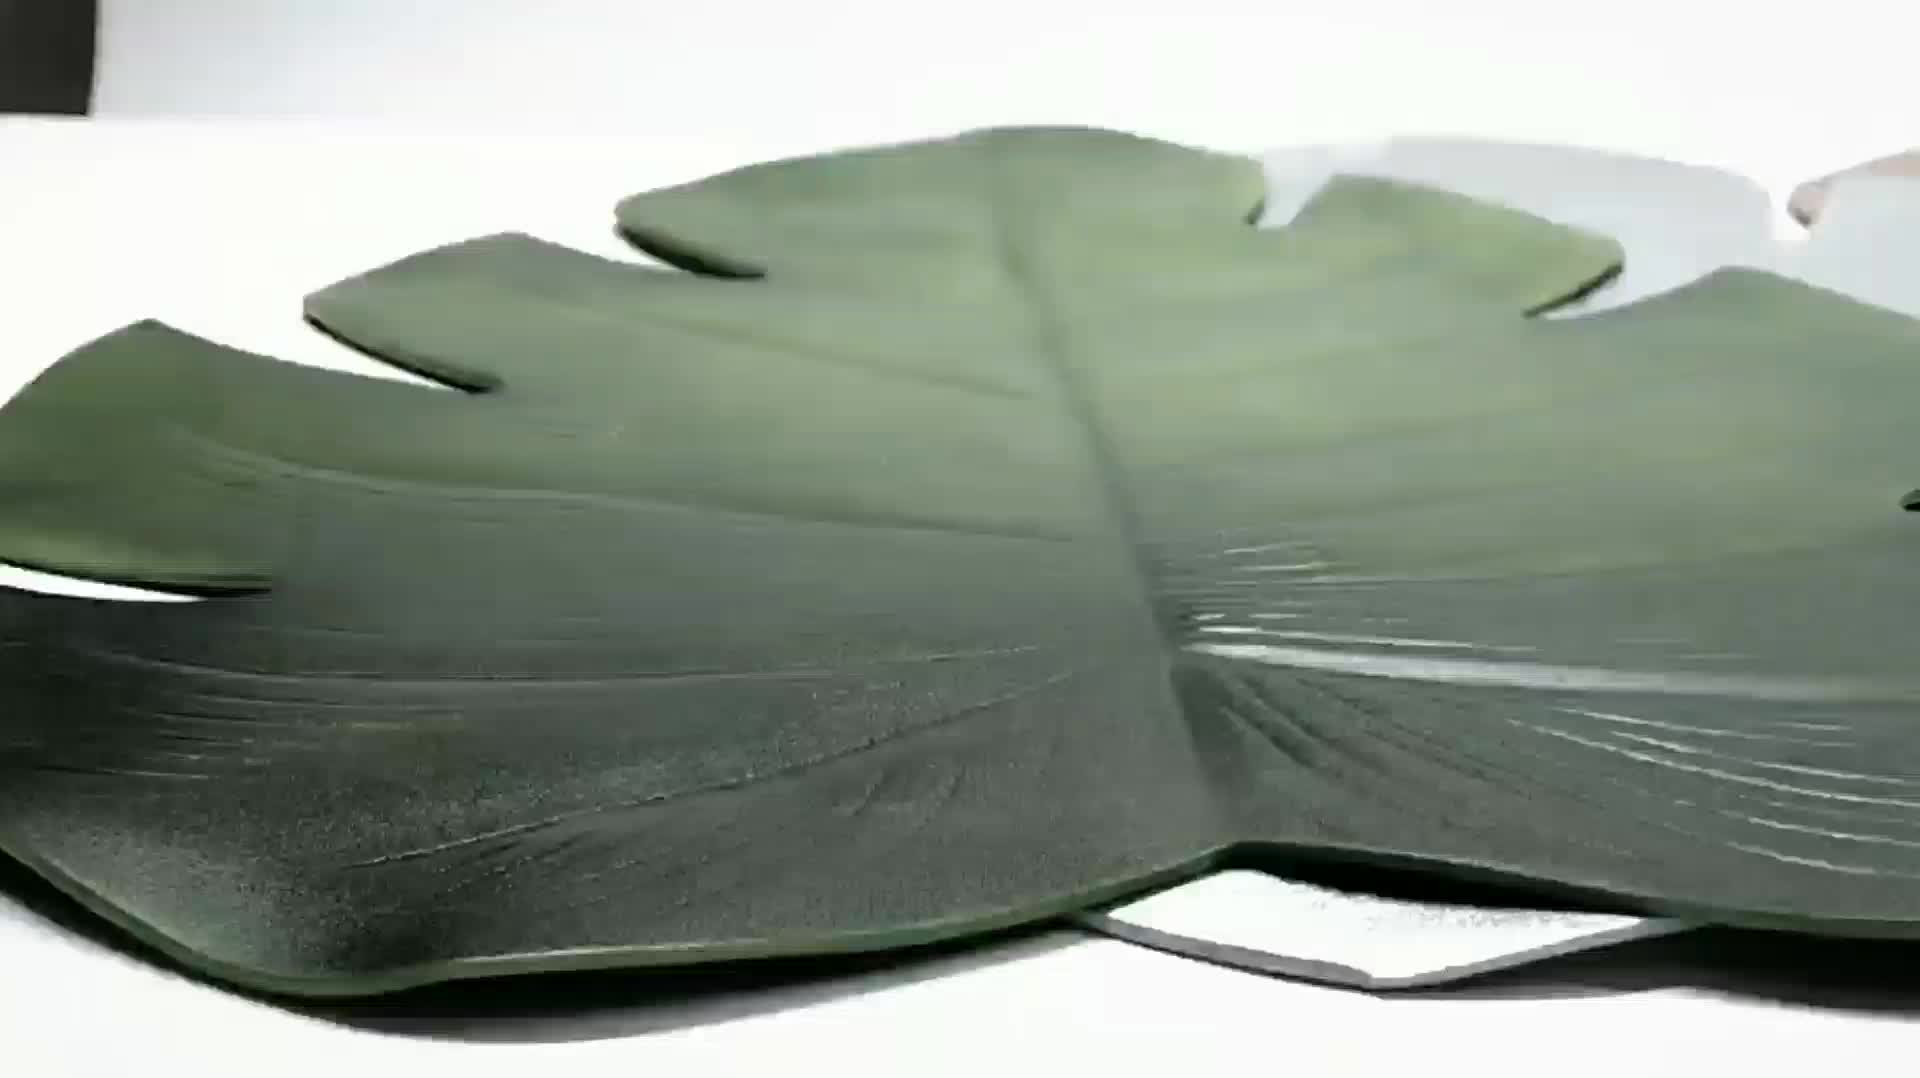 Tabletex New design Eco-Friendly summer hot sell eva leaf shaped coaster placemat